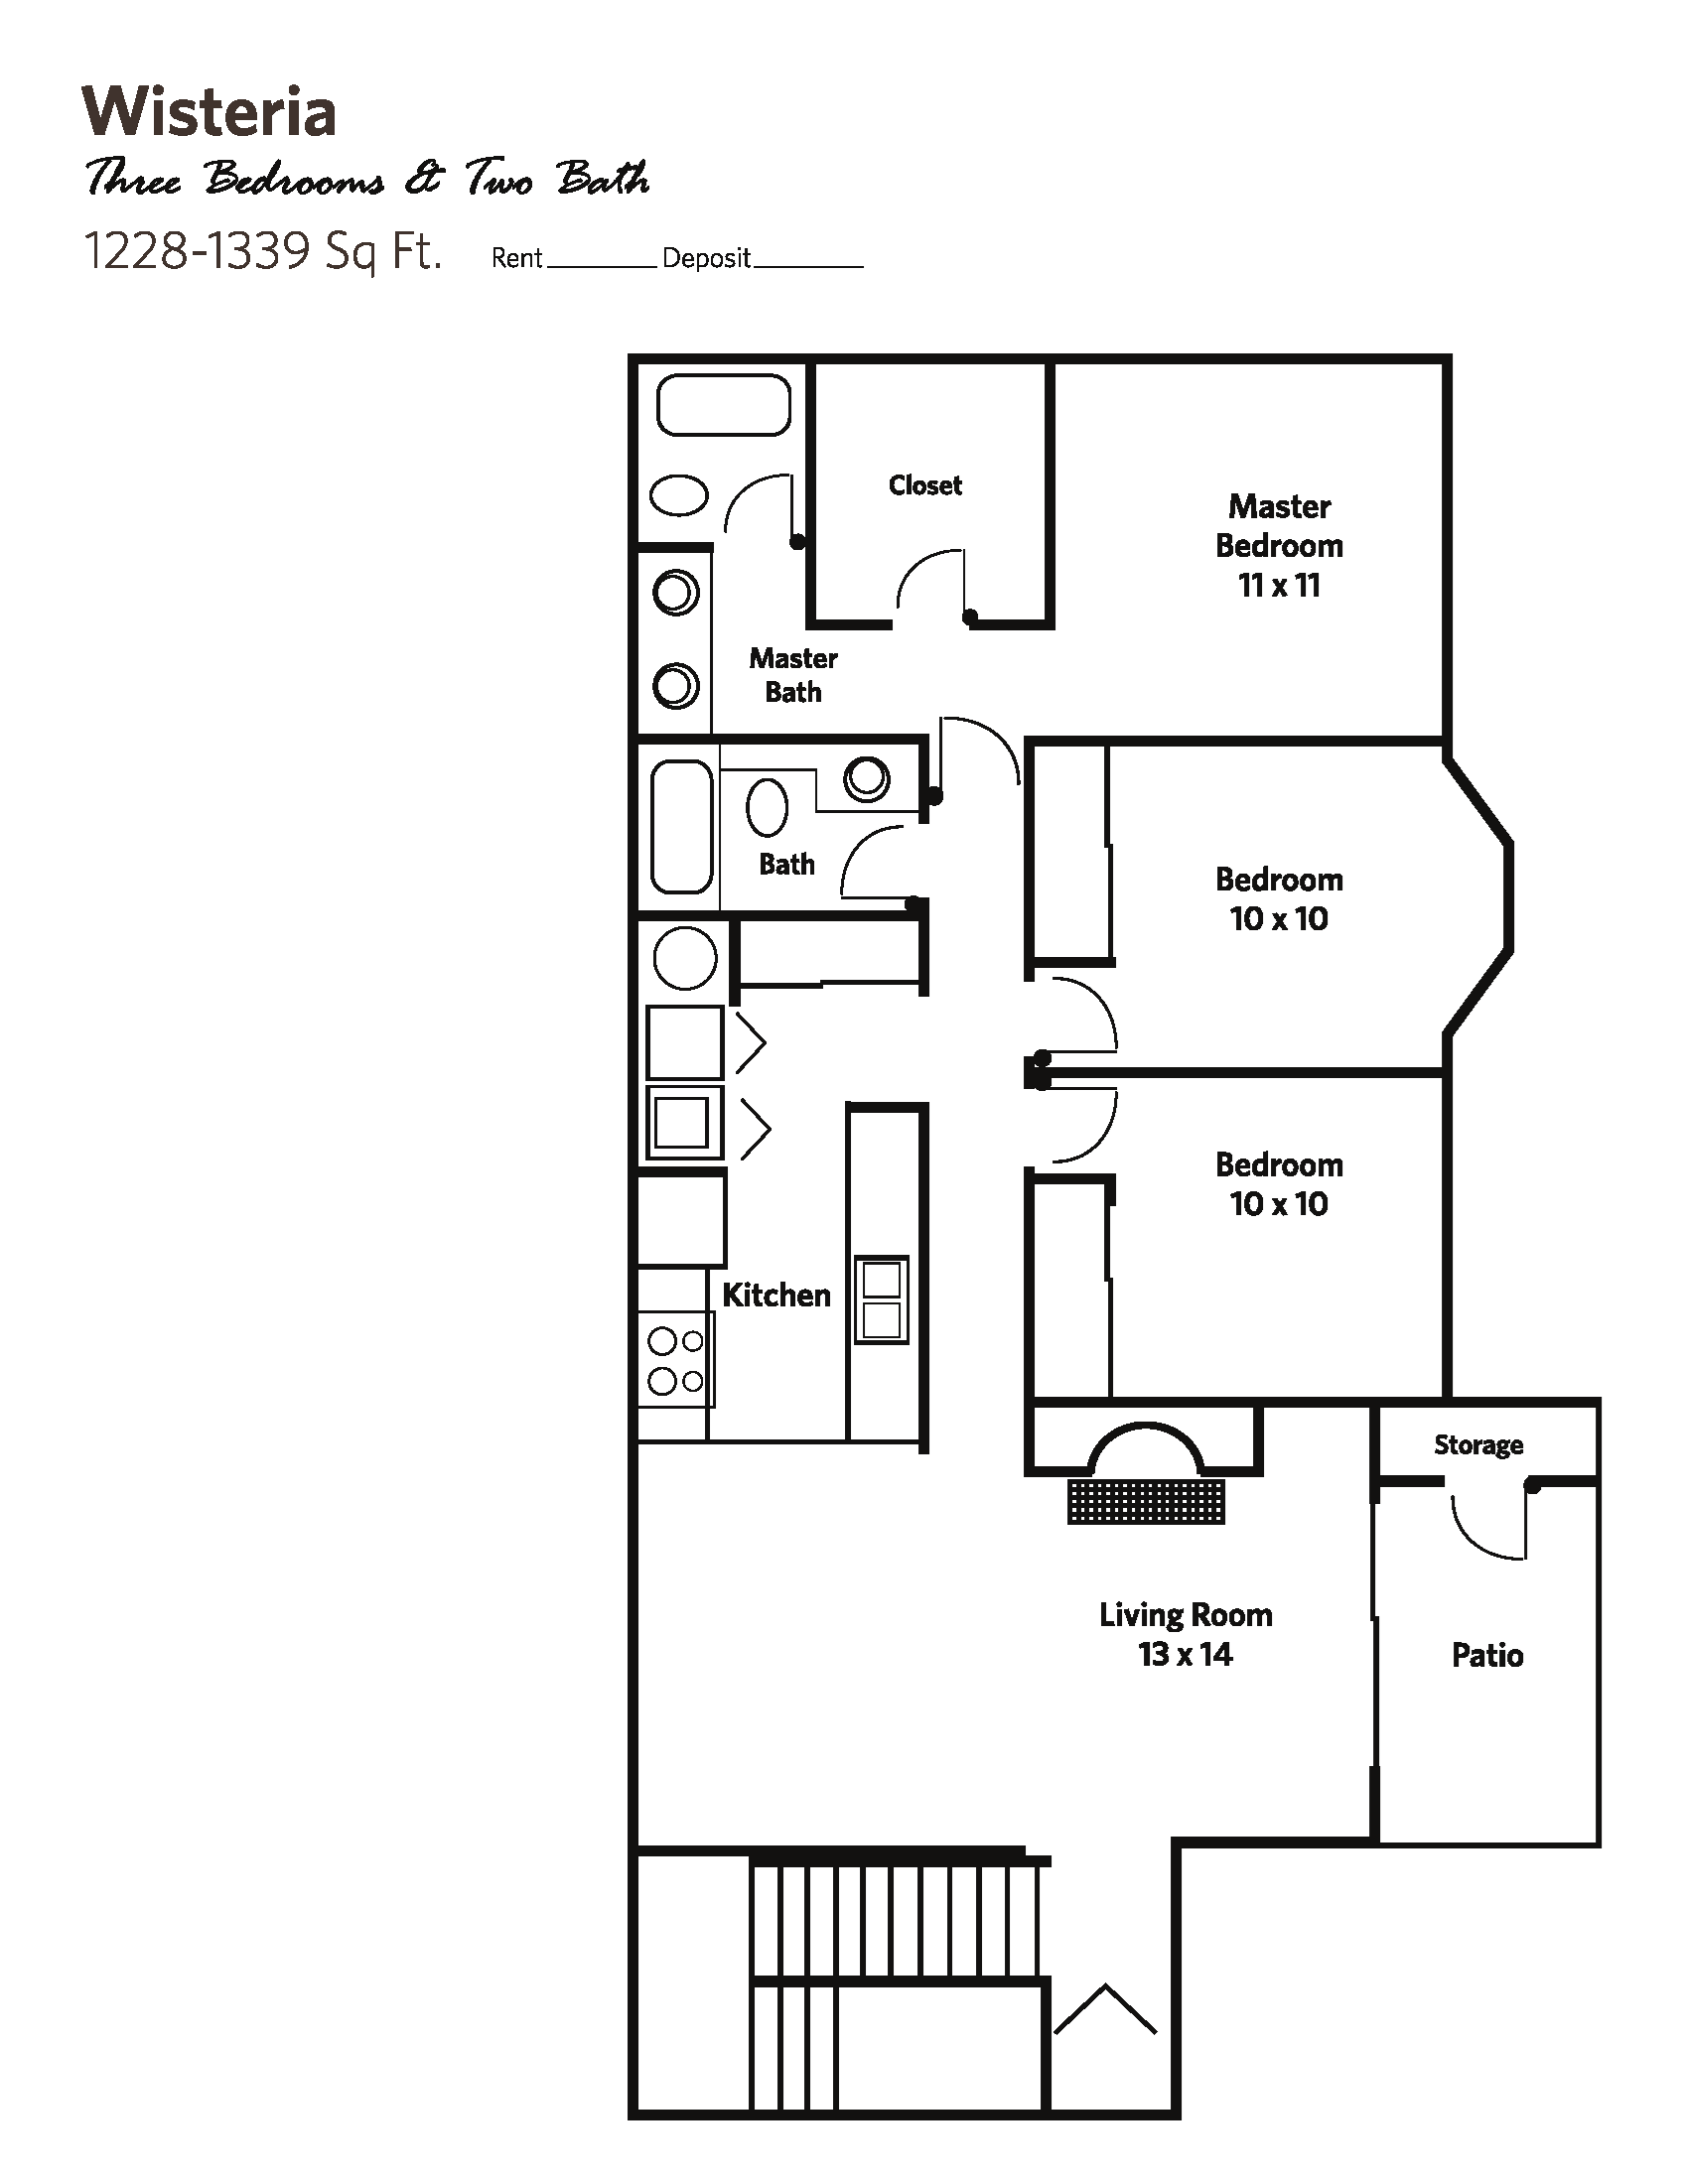 WISTERIA Small (3 bed + 2 bath) - Apartments Floor Plan 7